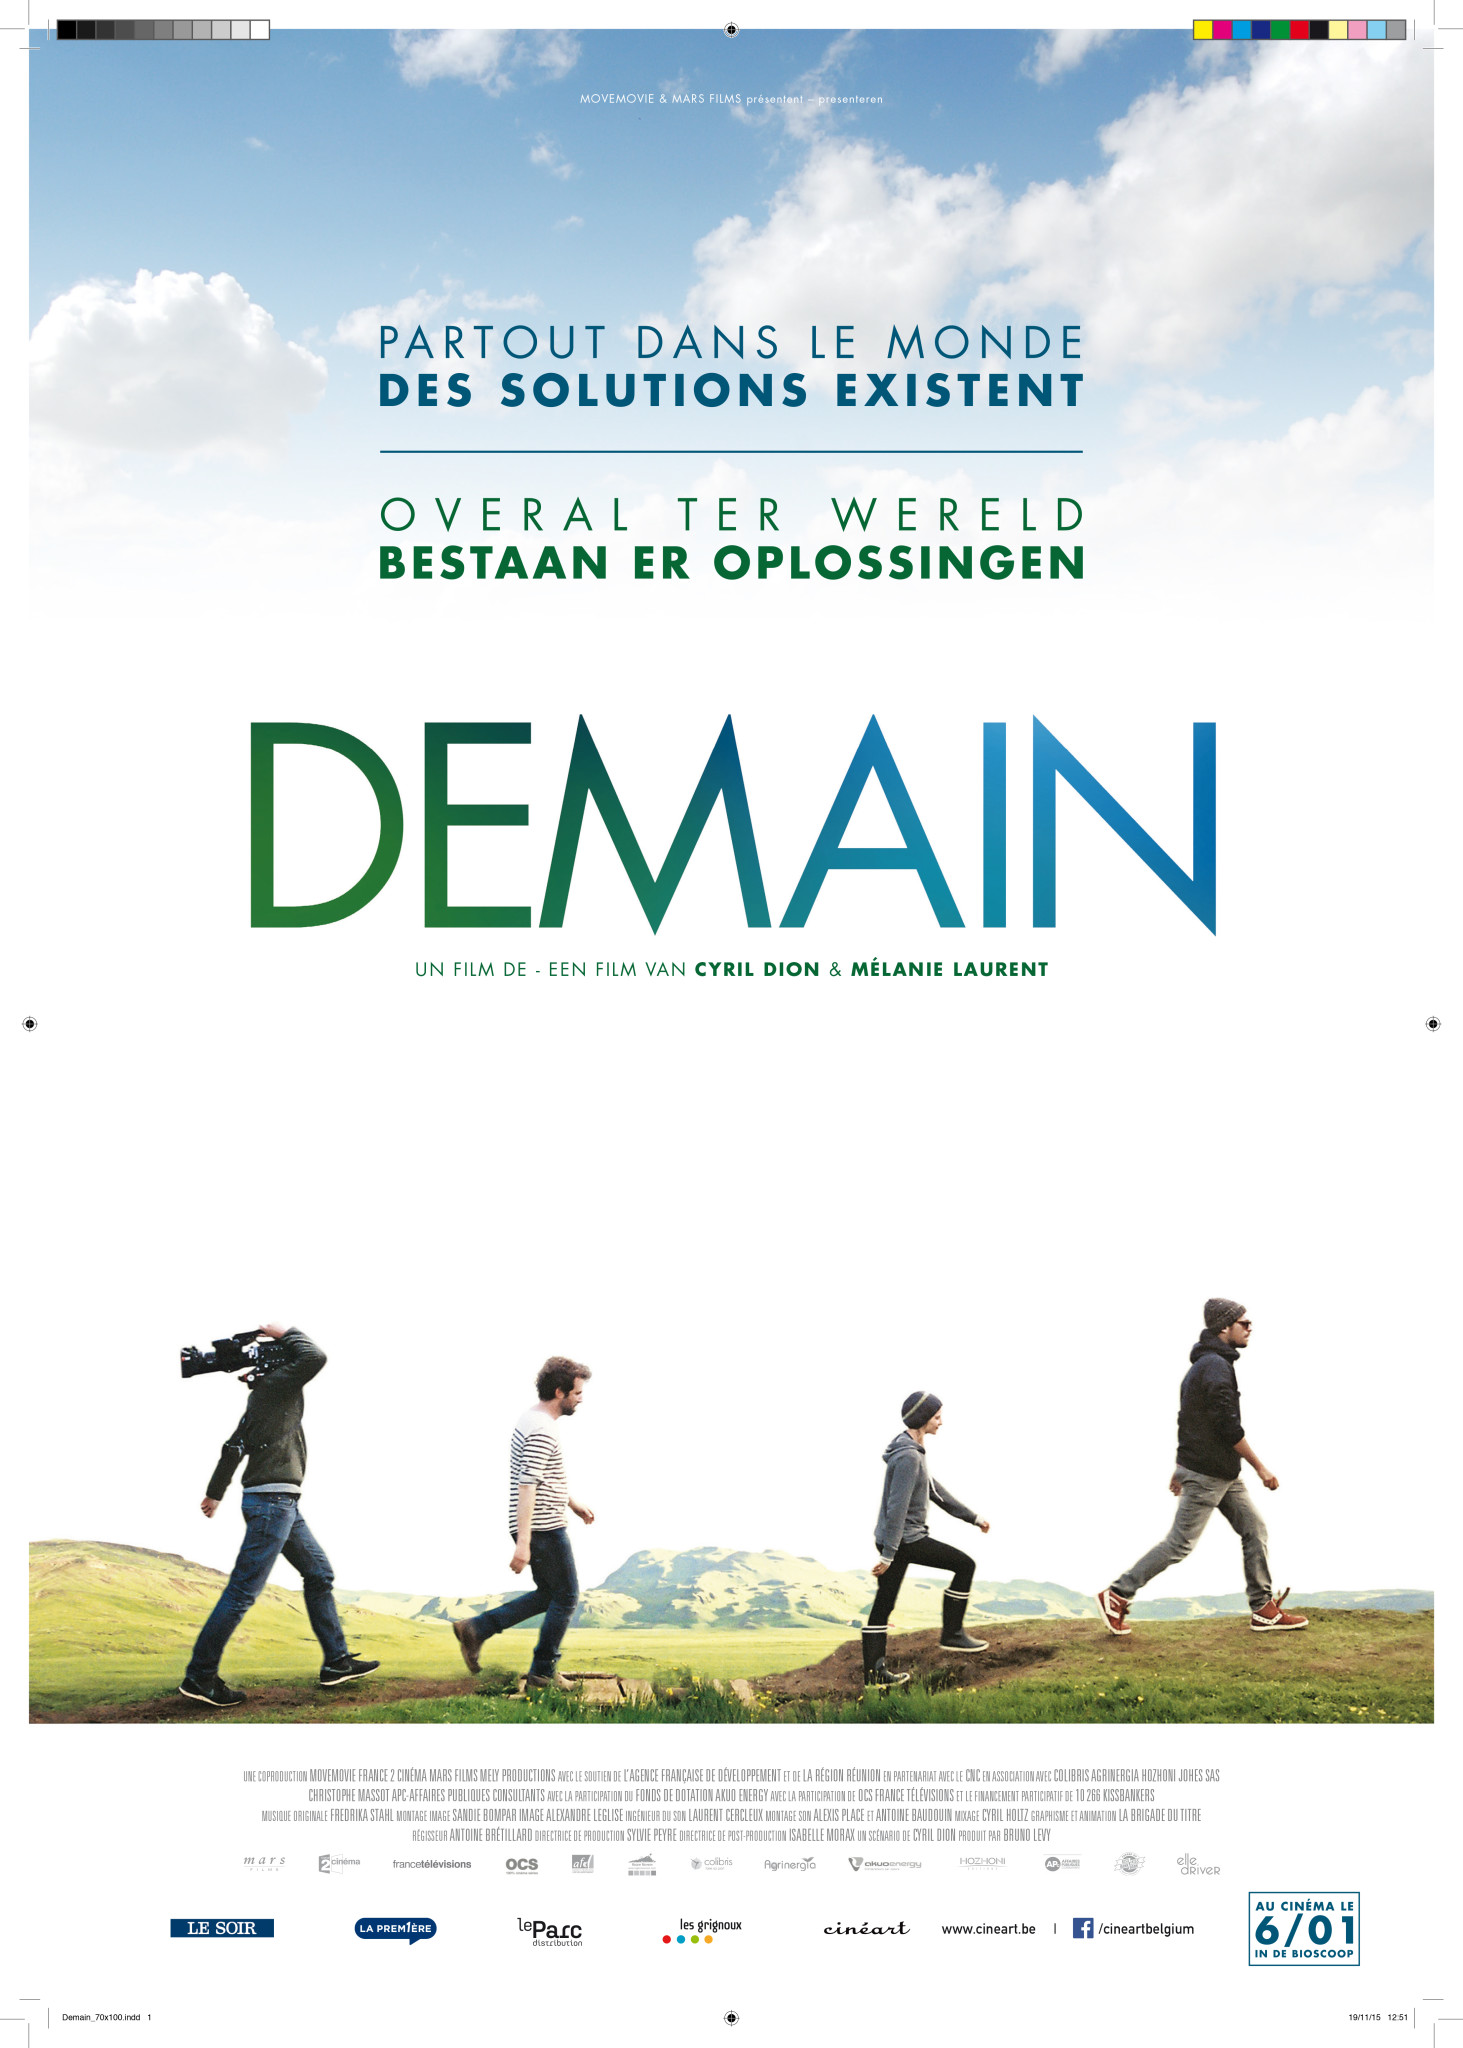 """Demain"", un film sur les actions positives, un film de transition?"